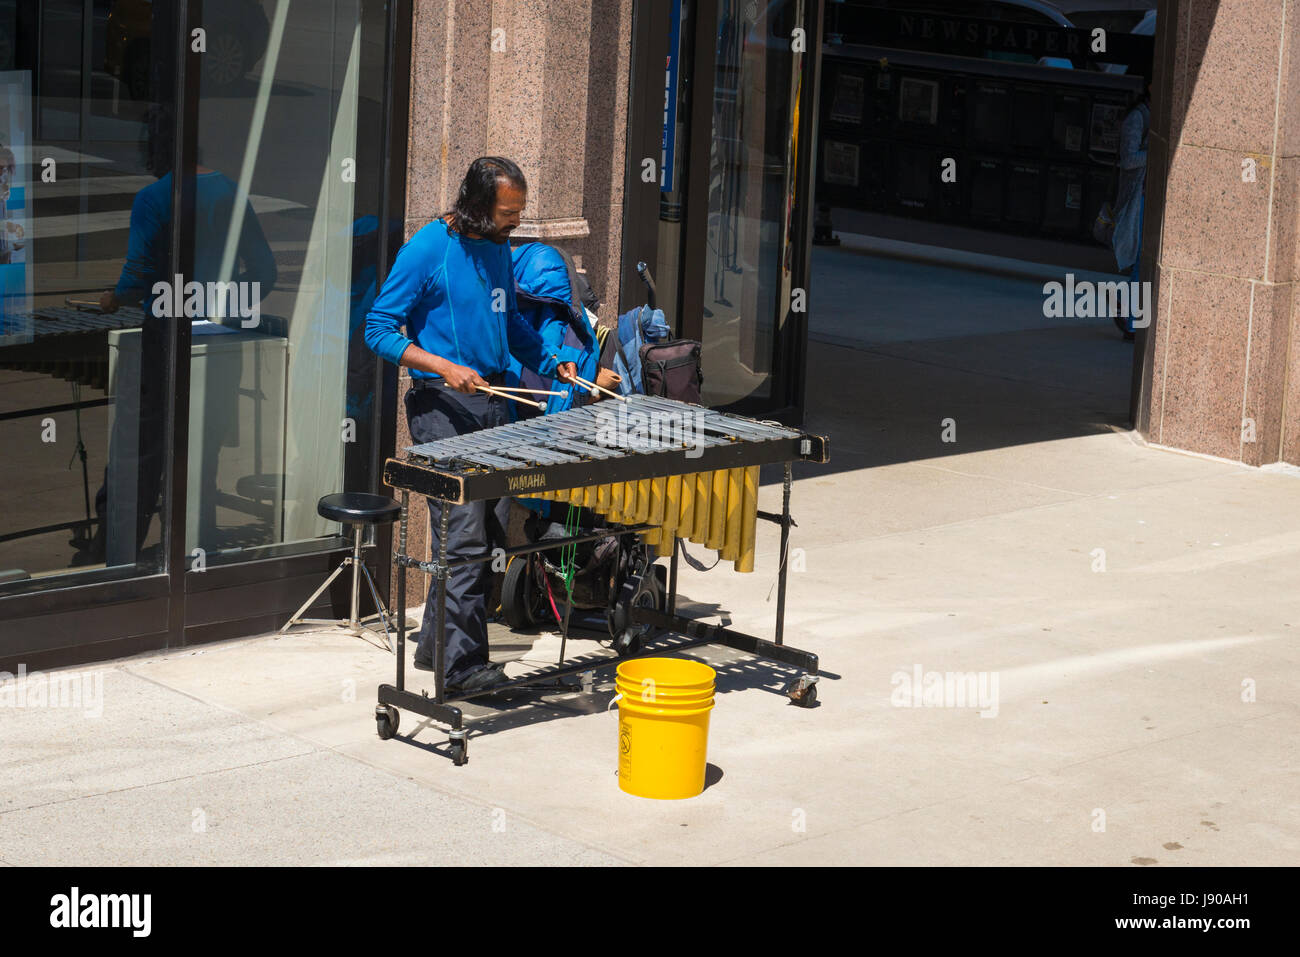 Chicago Illinois South Michigan Ave bearded busker street entertainer musician playing xylophone on pavement sidewalk - Stock Image